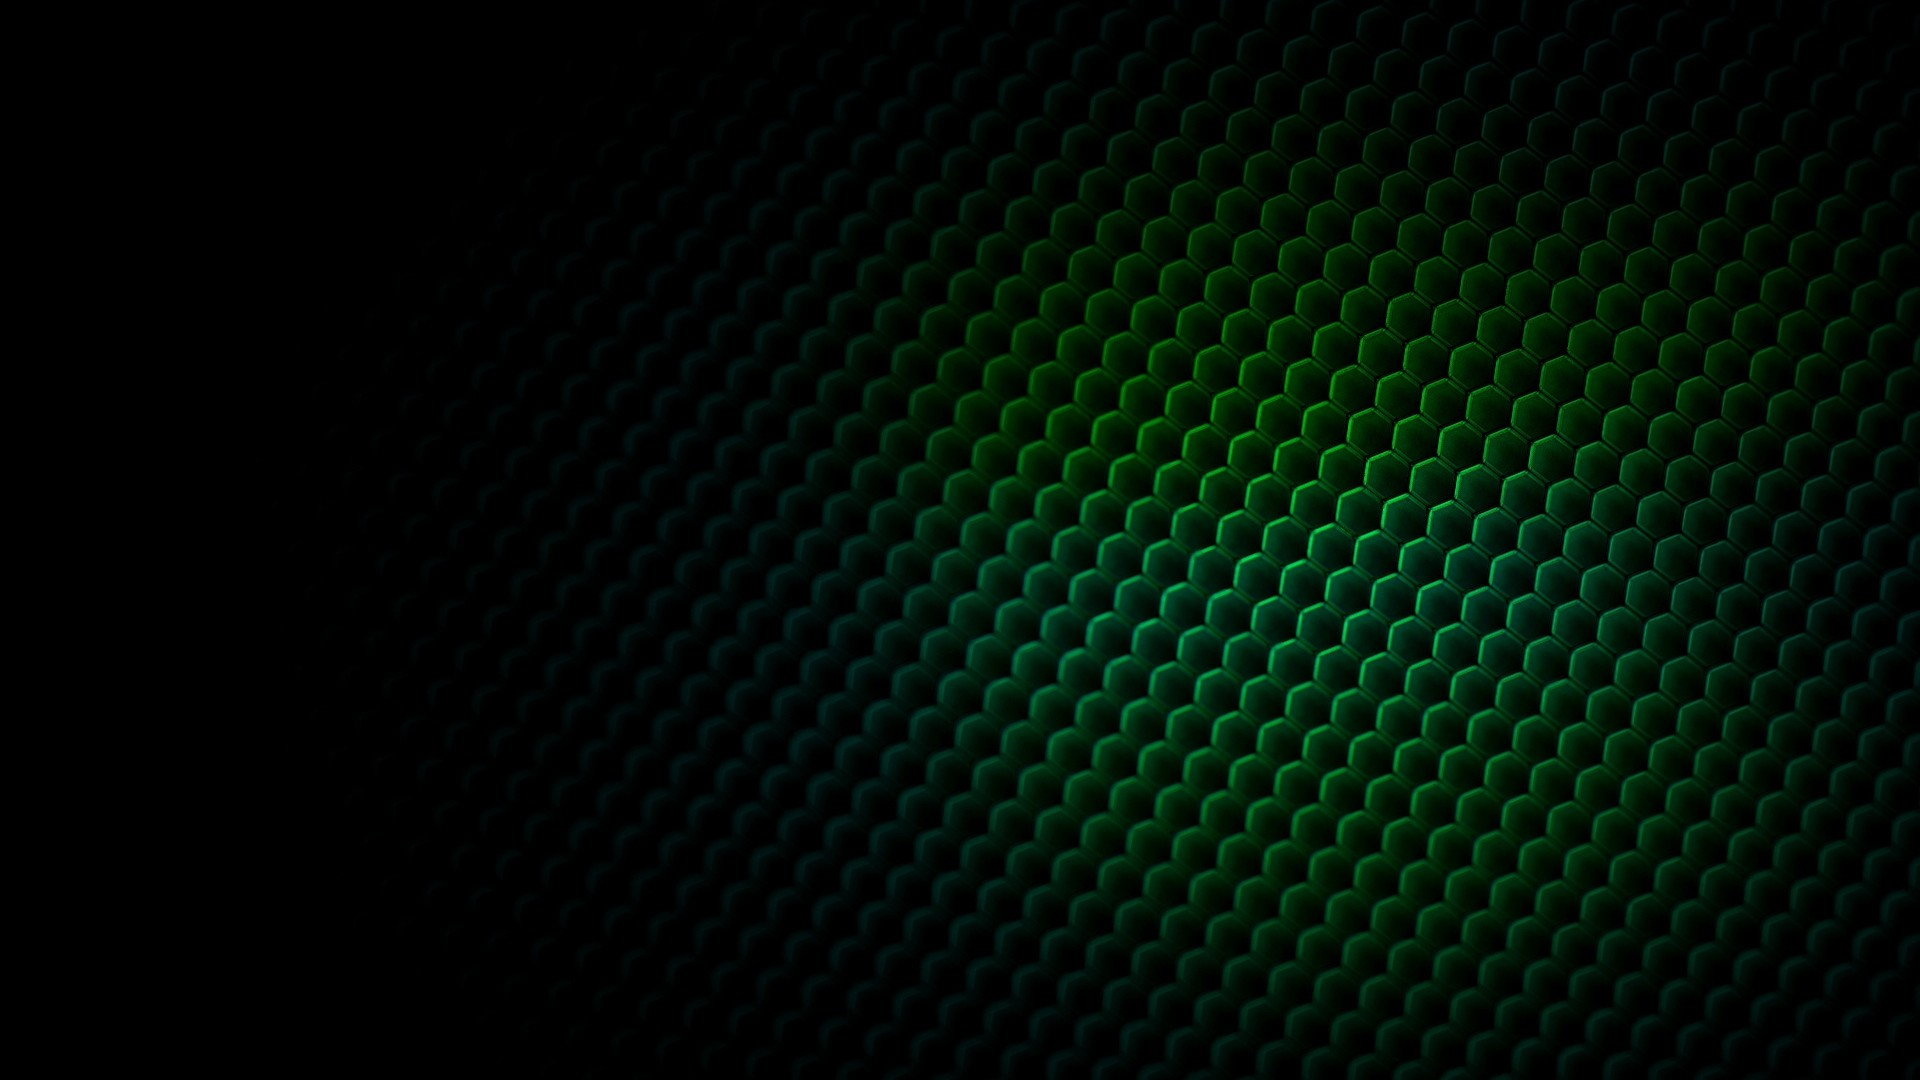 Dark Colors Computer Wallpaper 62 Images